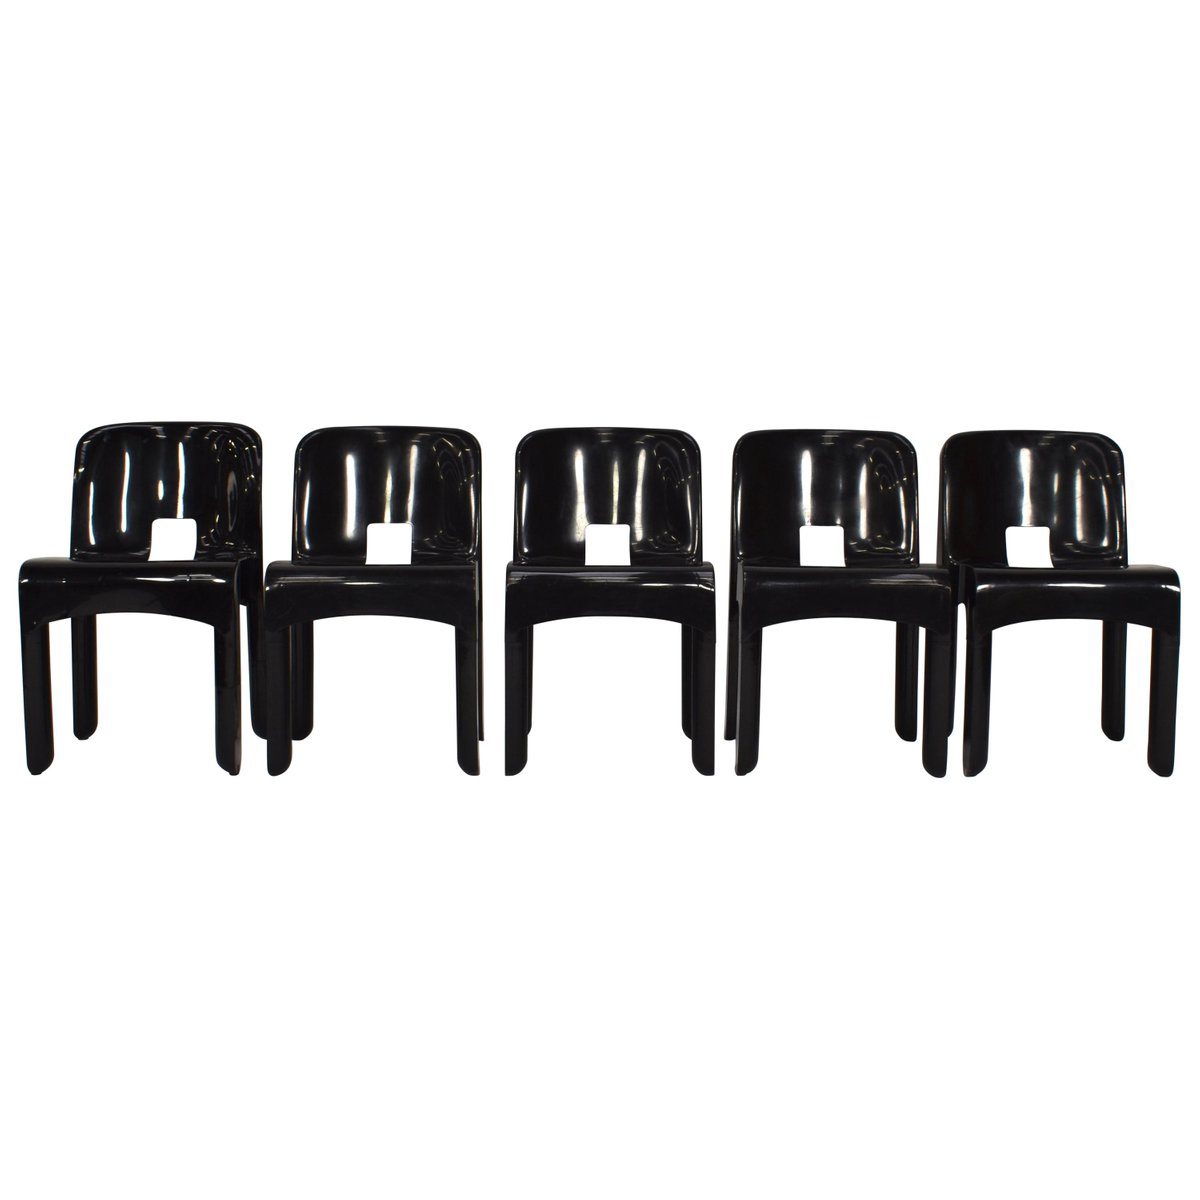 Marvelous 4867 Universale Plastic Chairs By Joe Colombo For Kartell 1967 Set Of 5 Inzonedesignstudio Interior Chair Design Inzonedesignstudiocom